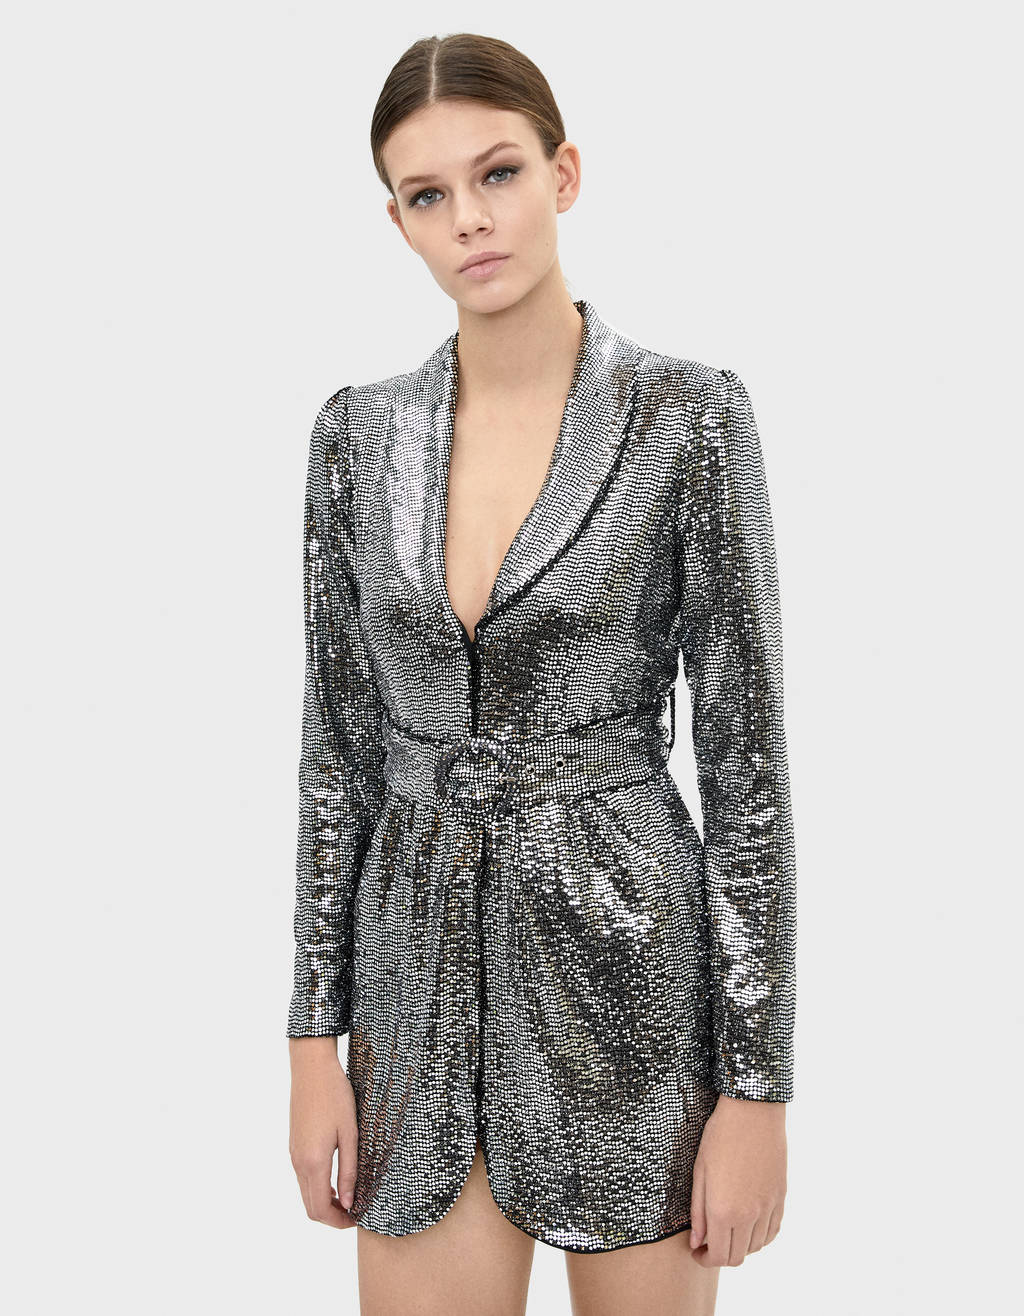 Mirrored sequin blazer dress